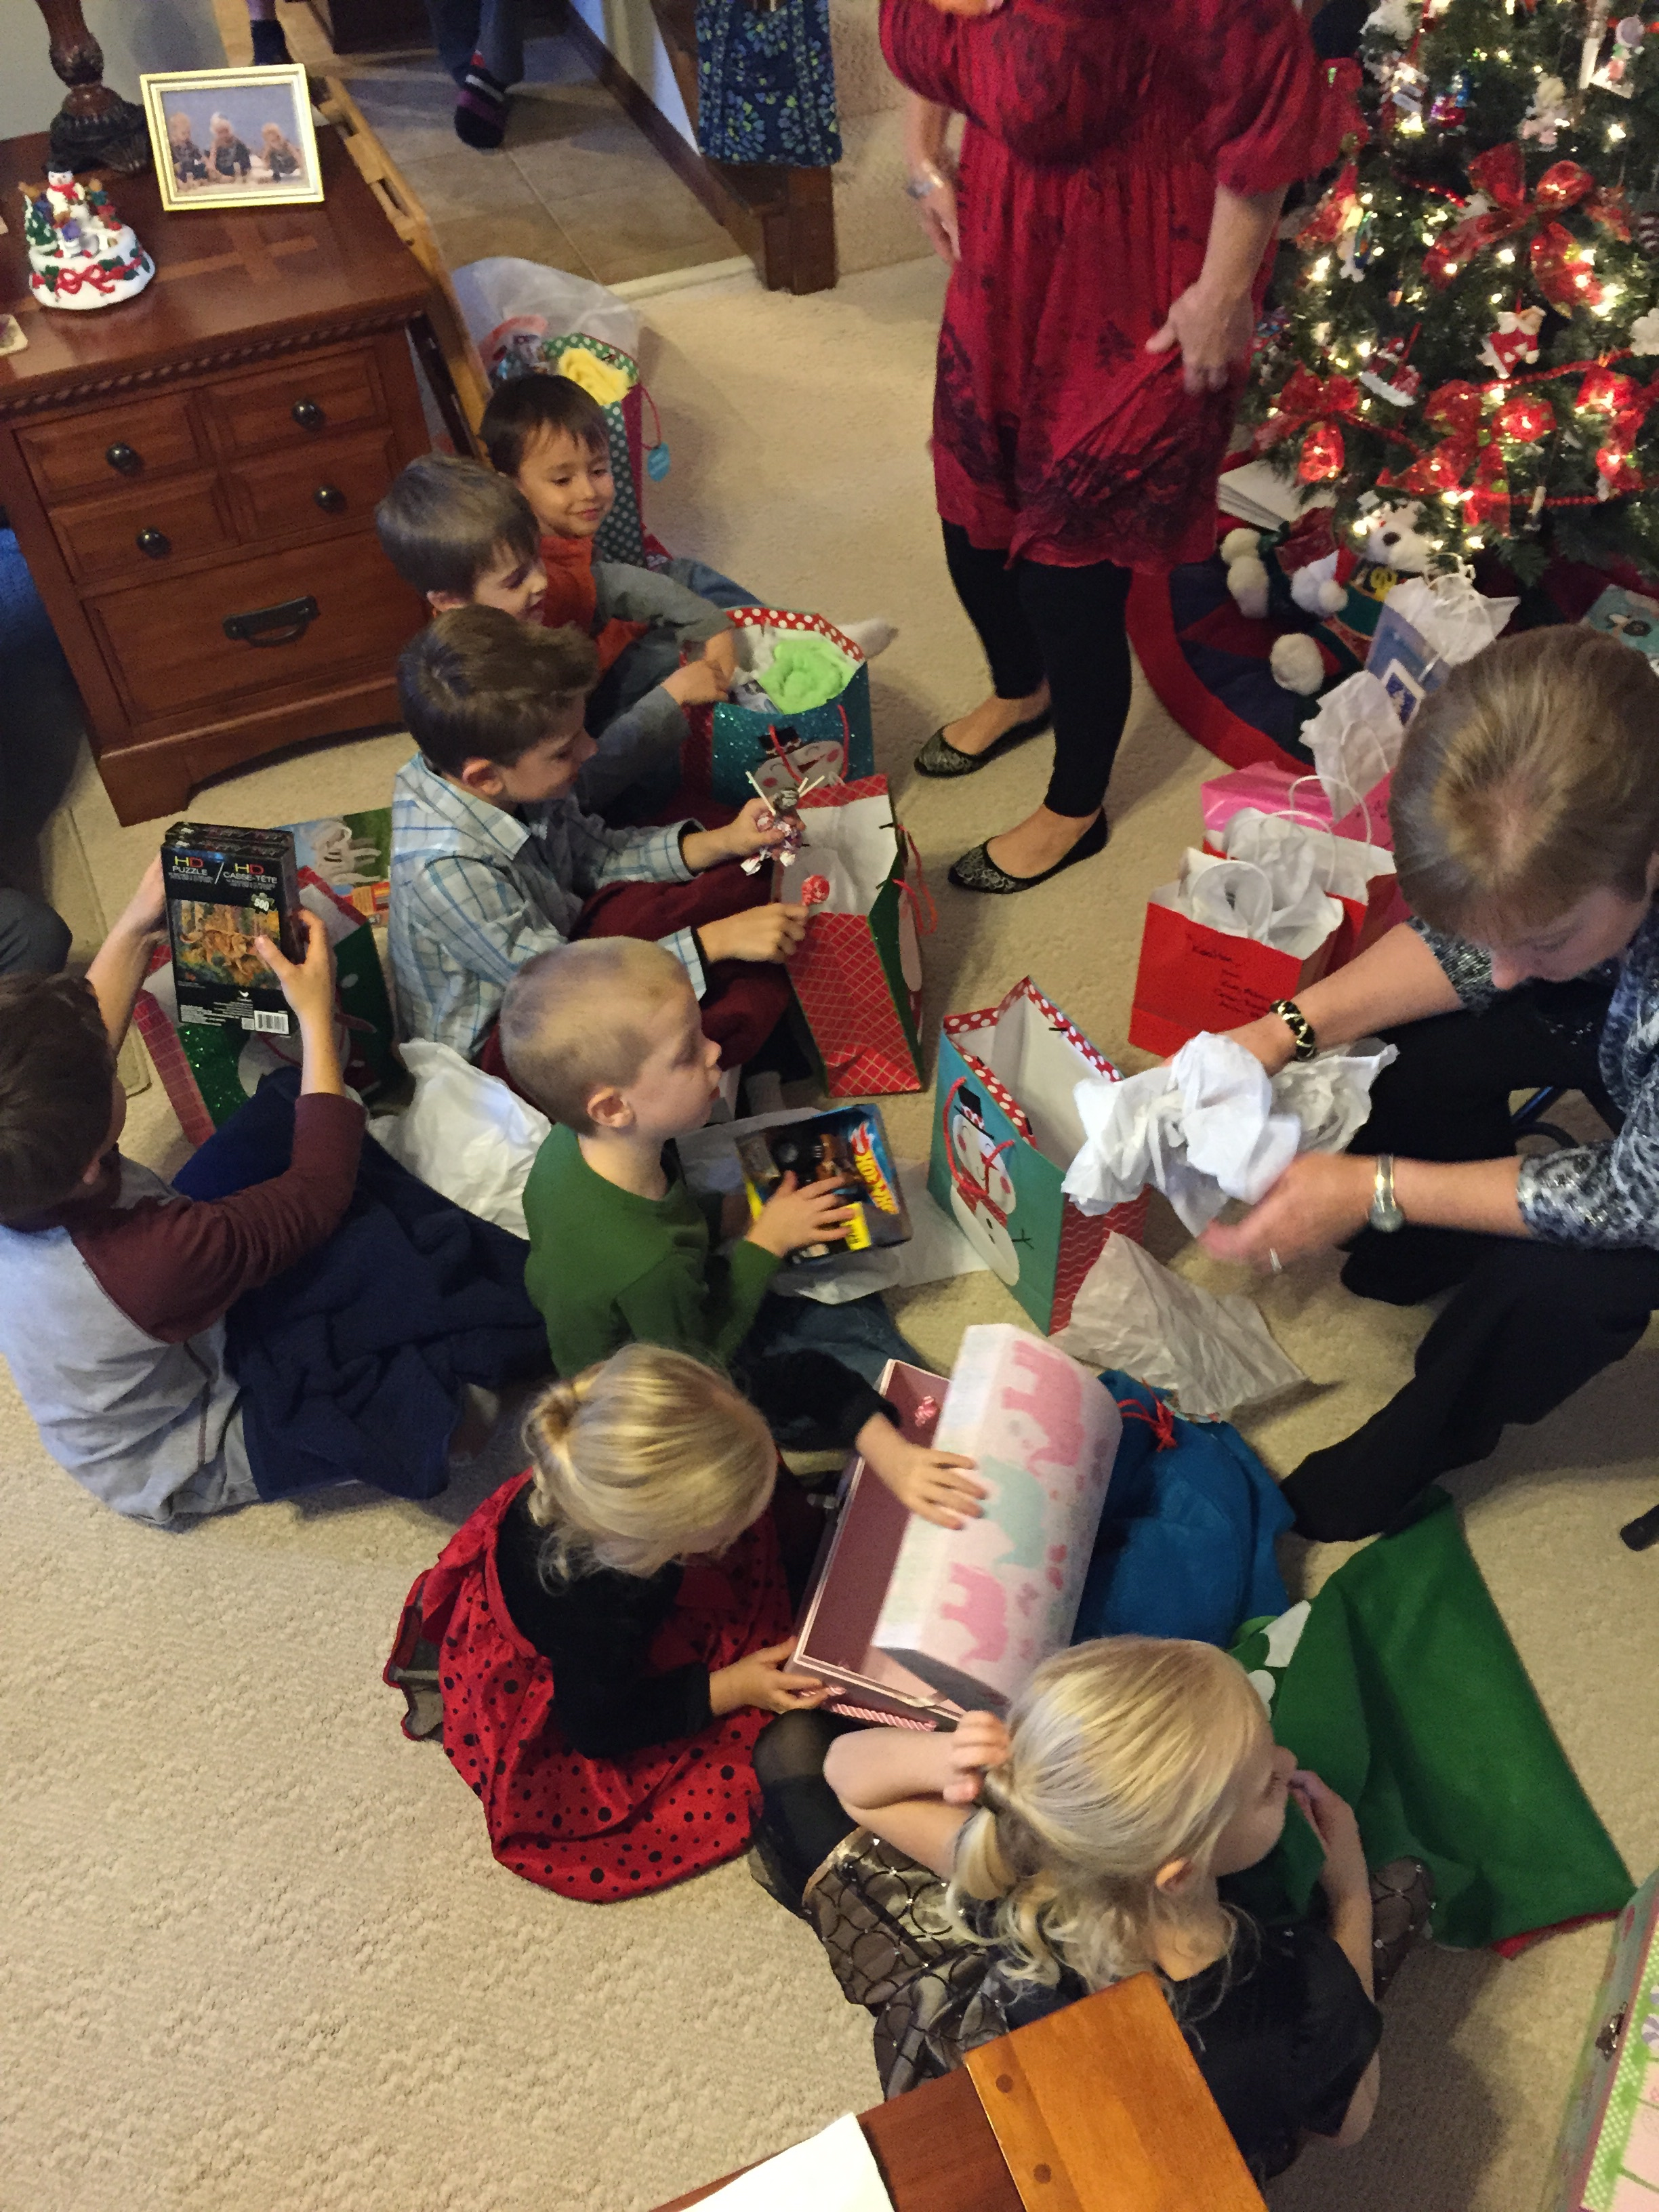 On my mom's side, there are ten of us grandchildren. Some of us are married and some have kids. I loved watching all the babies open their gifts! There's nothing like watching kids tear into presents at Christmastime. It was a flashback to my childhood!